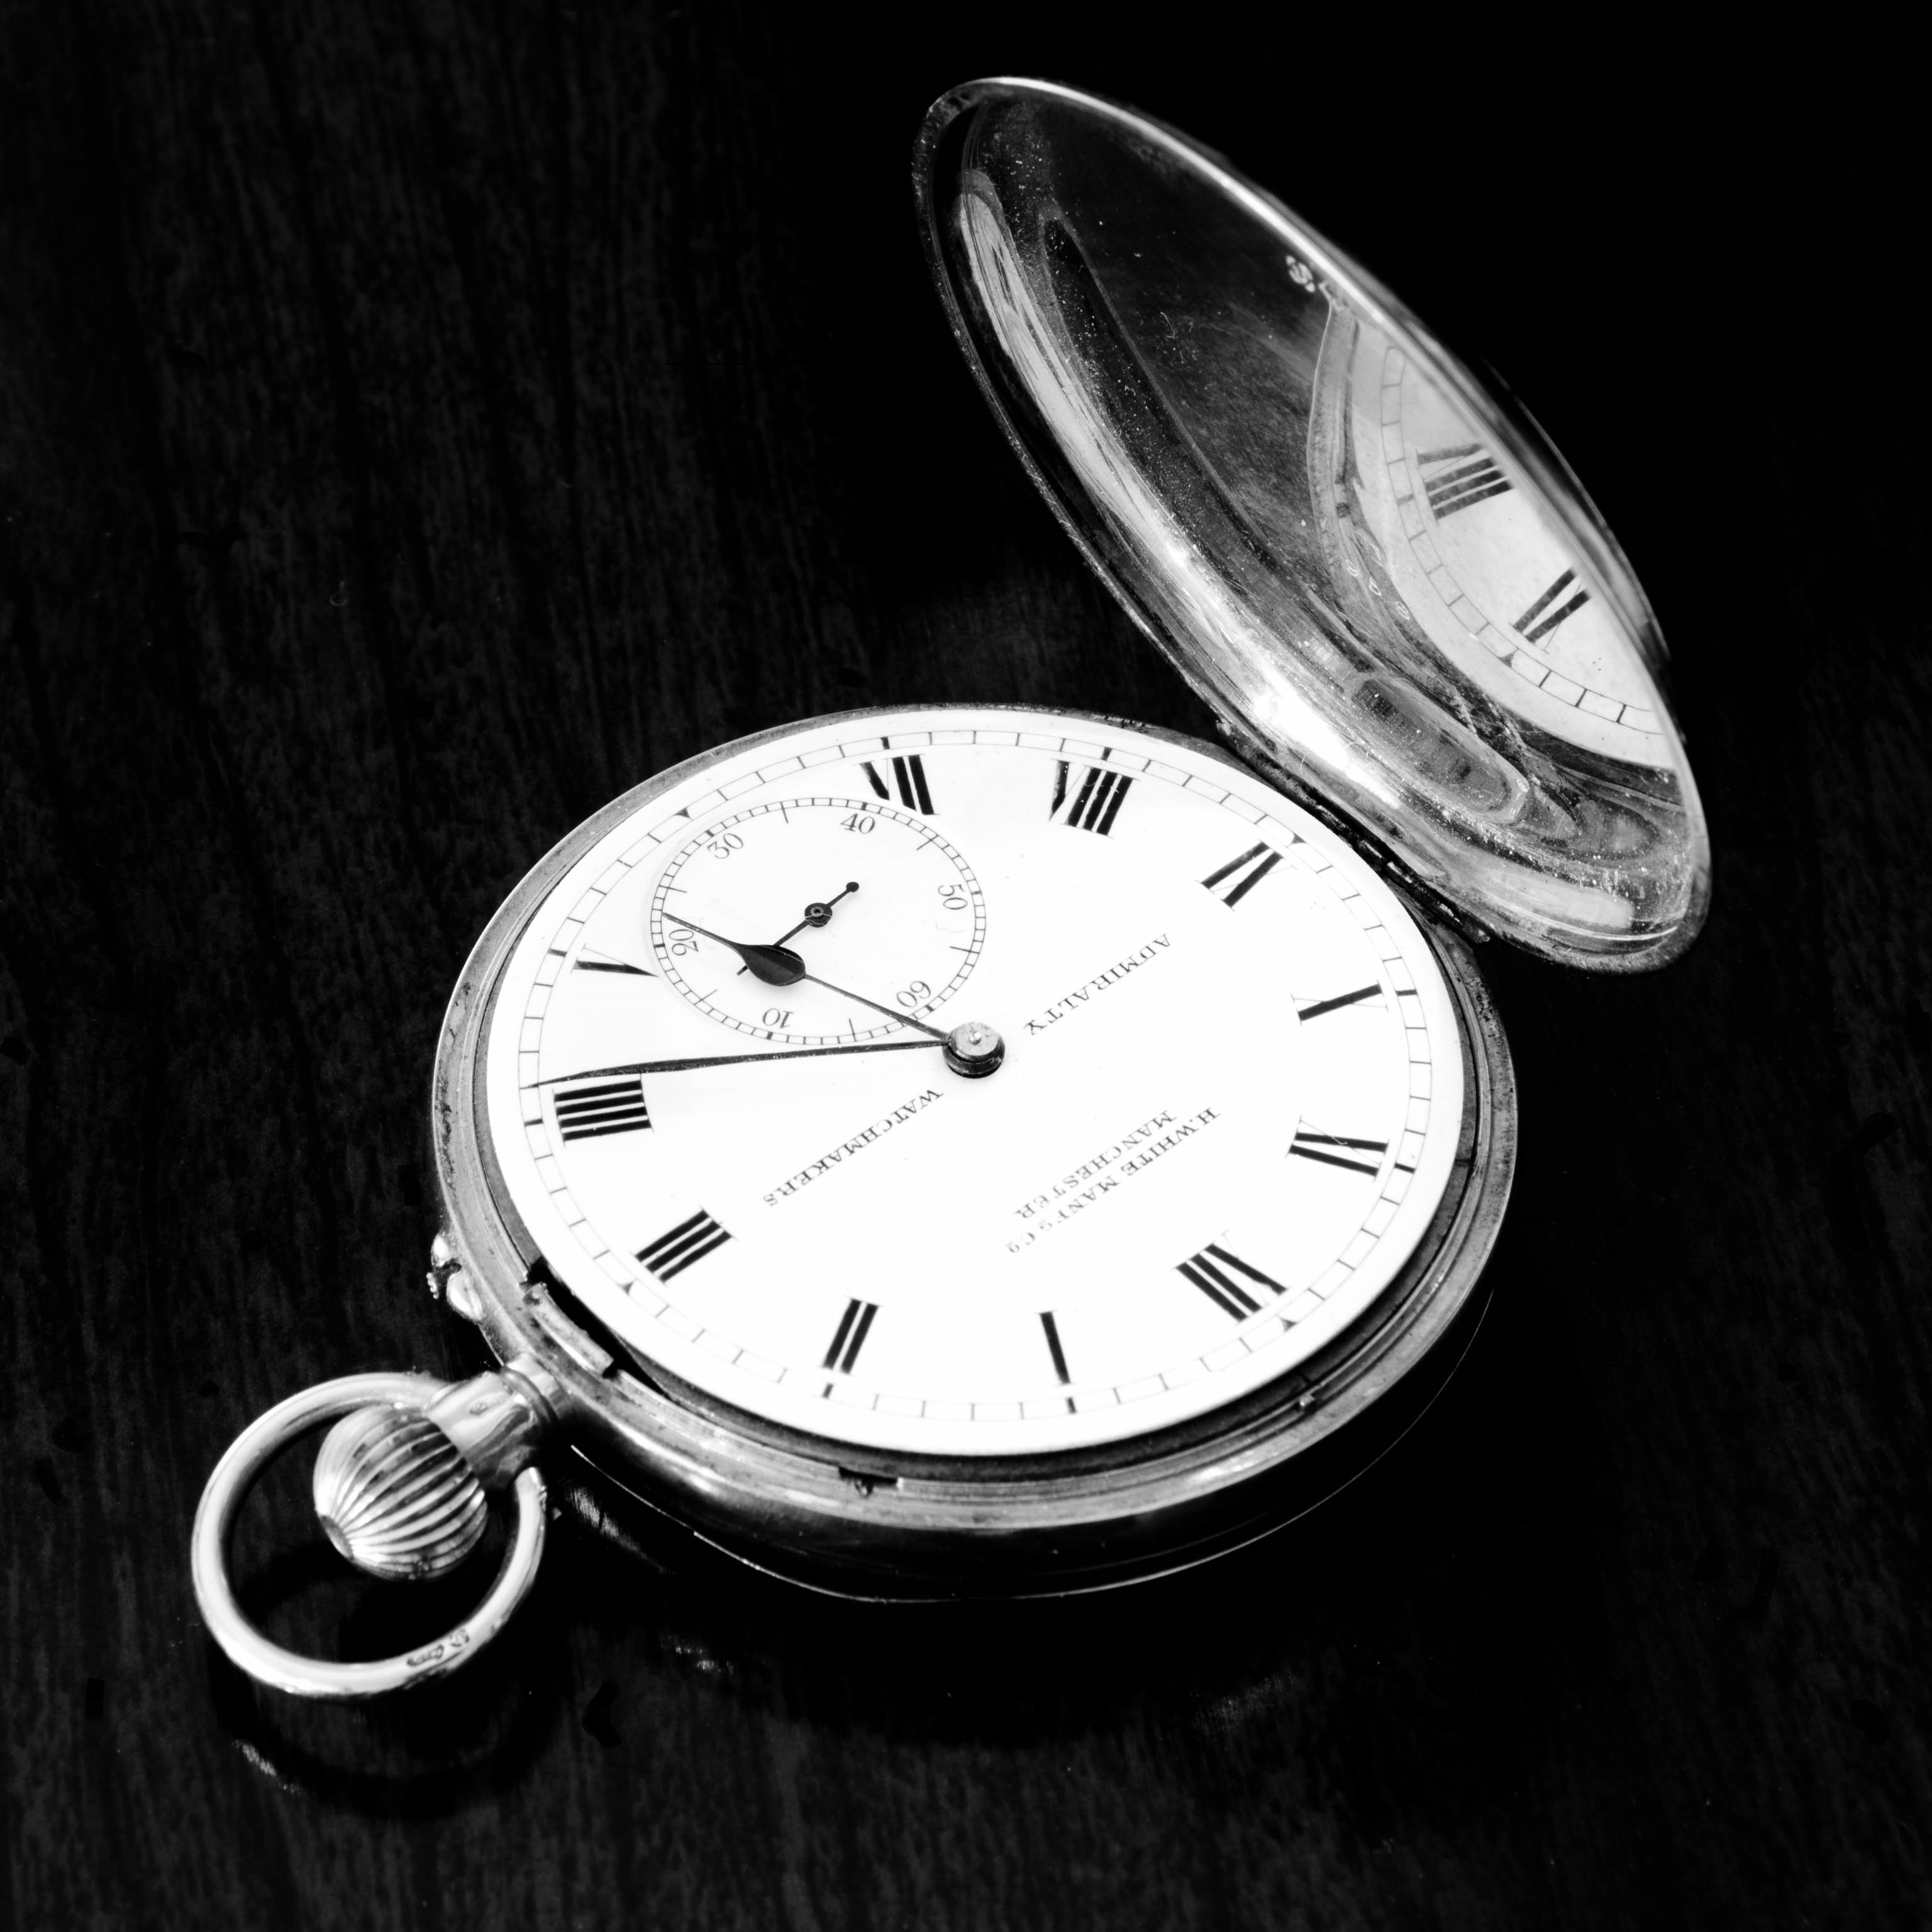 Old Watch – BW